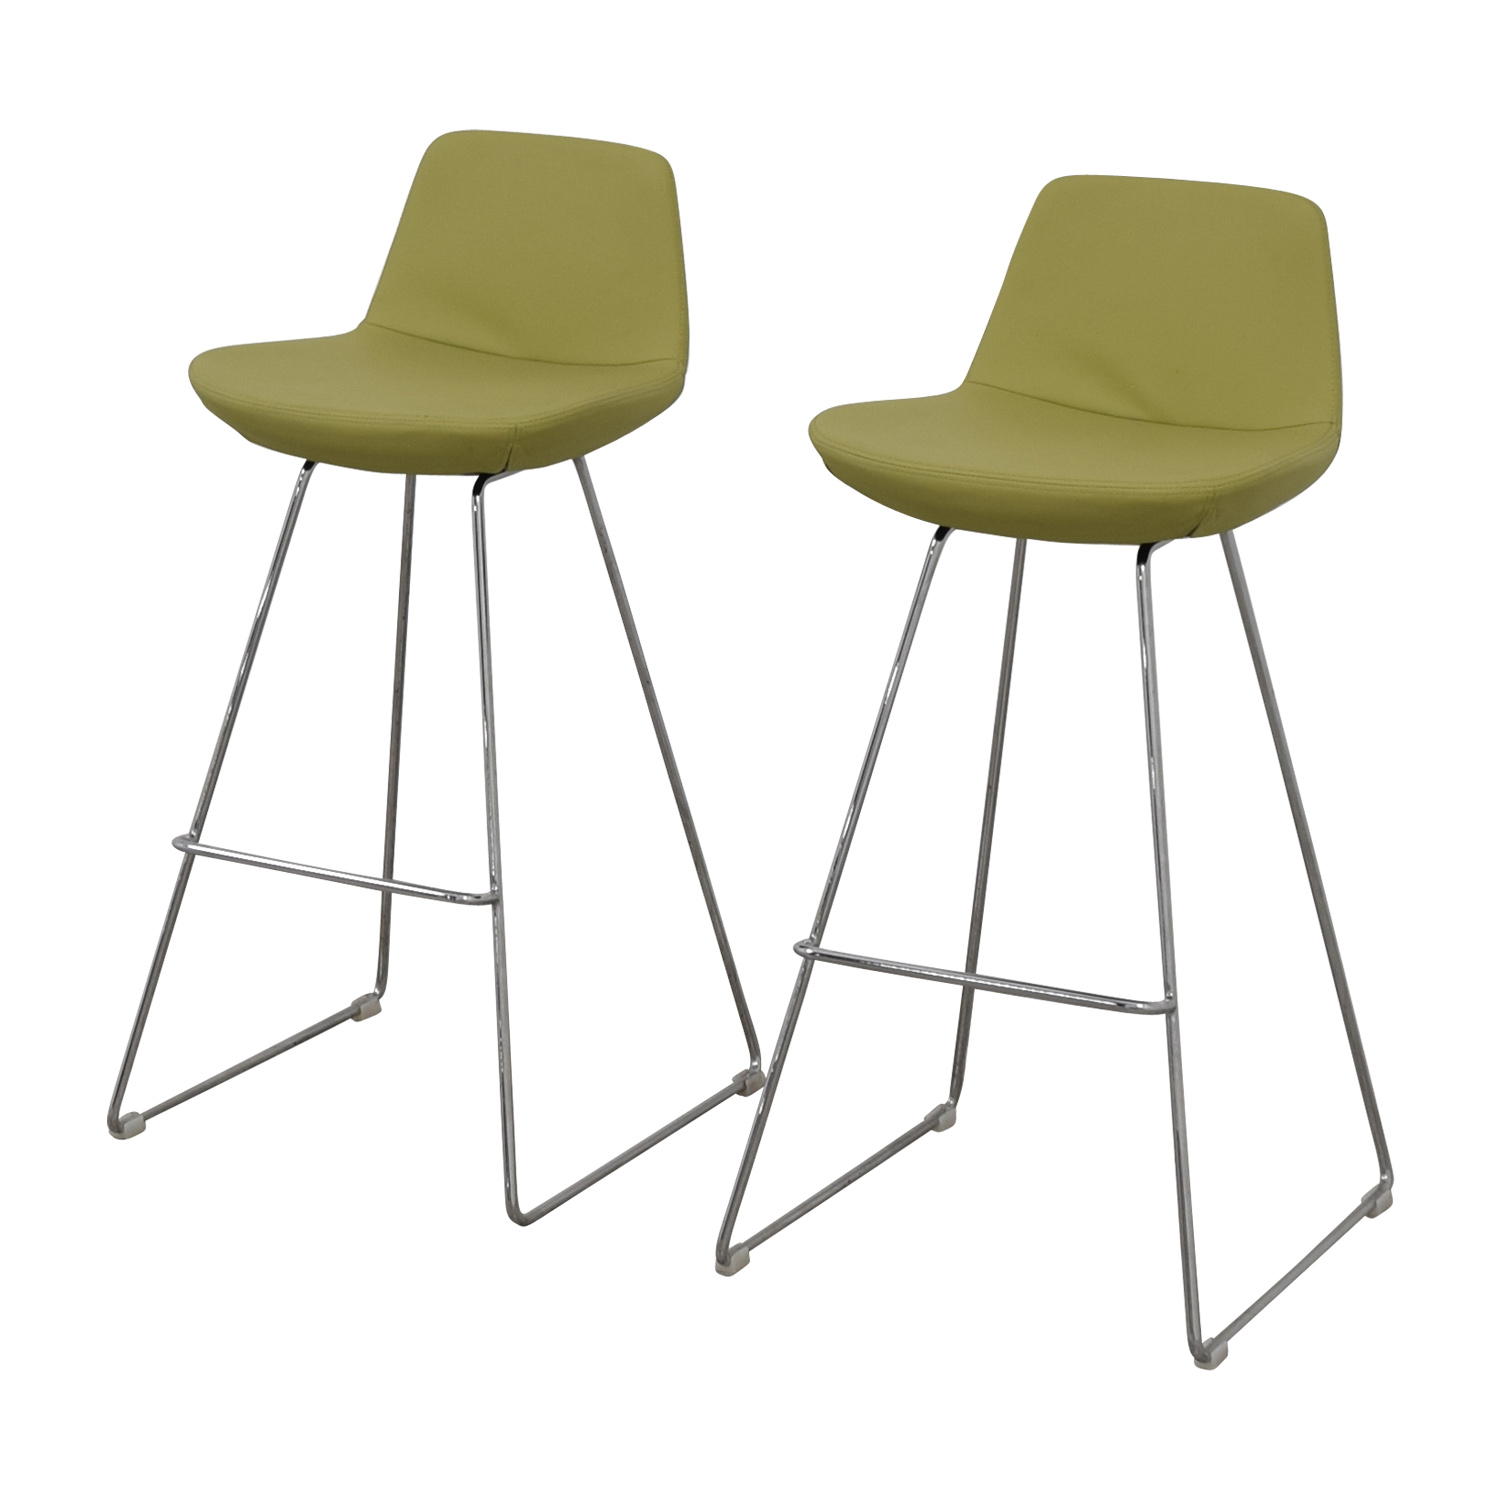 Design Within Reach Design Within Reach Lime Leather Bar Stools price